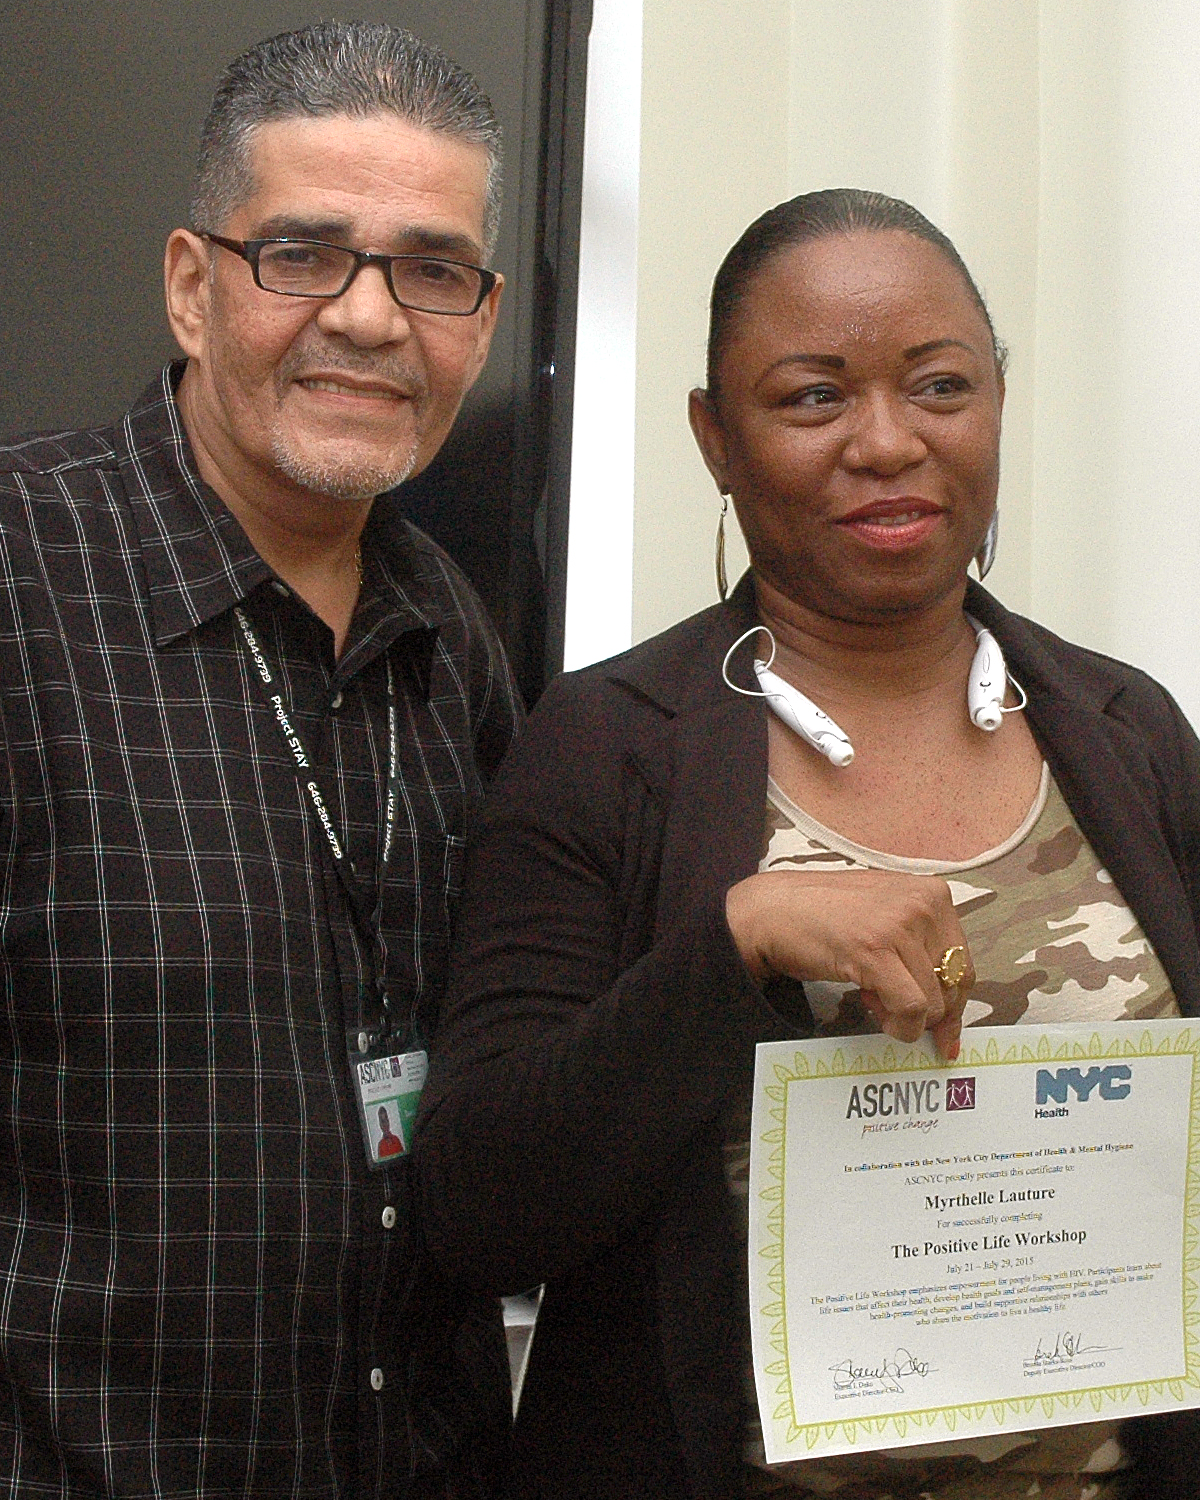 Myrthelle L. getting her completion certificate